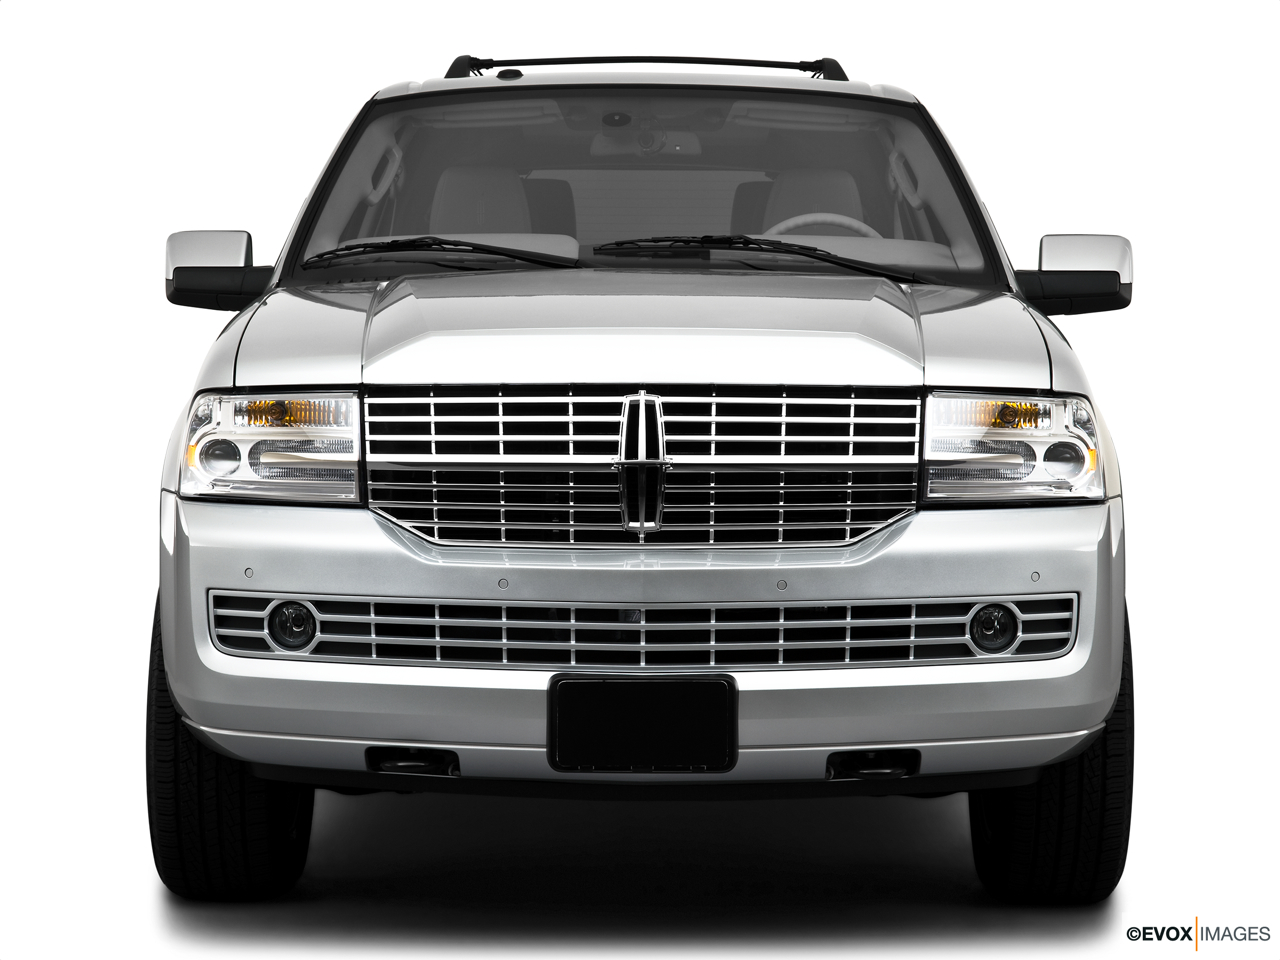 2010 Lincoln Navigator Base Low/wide front.